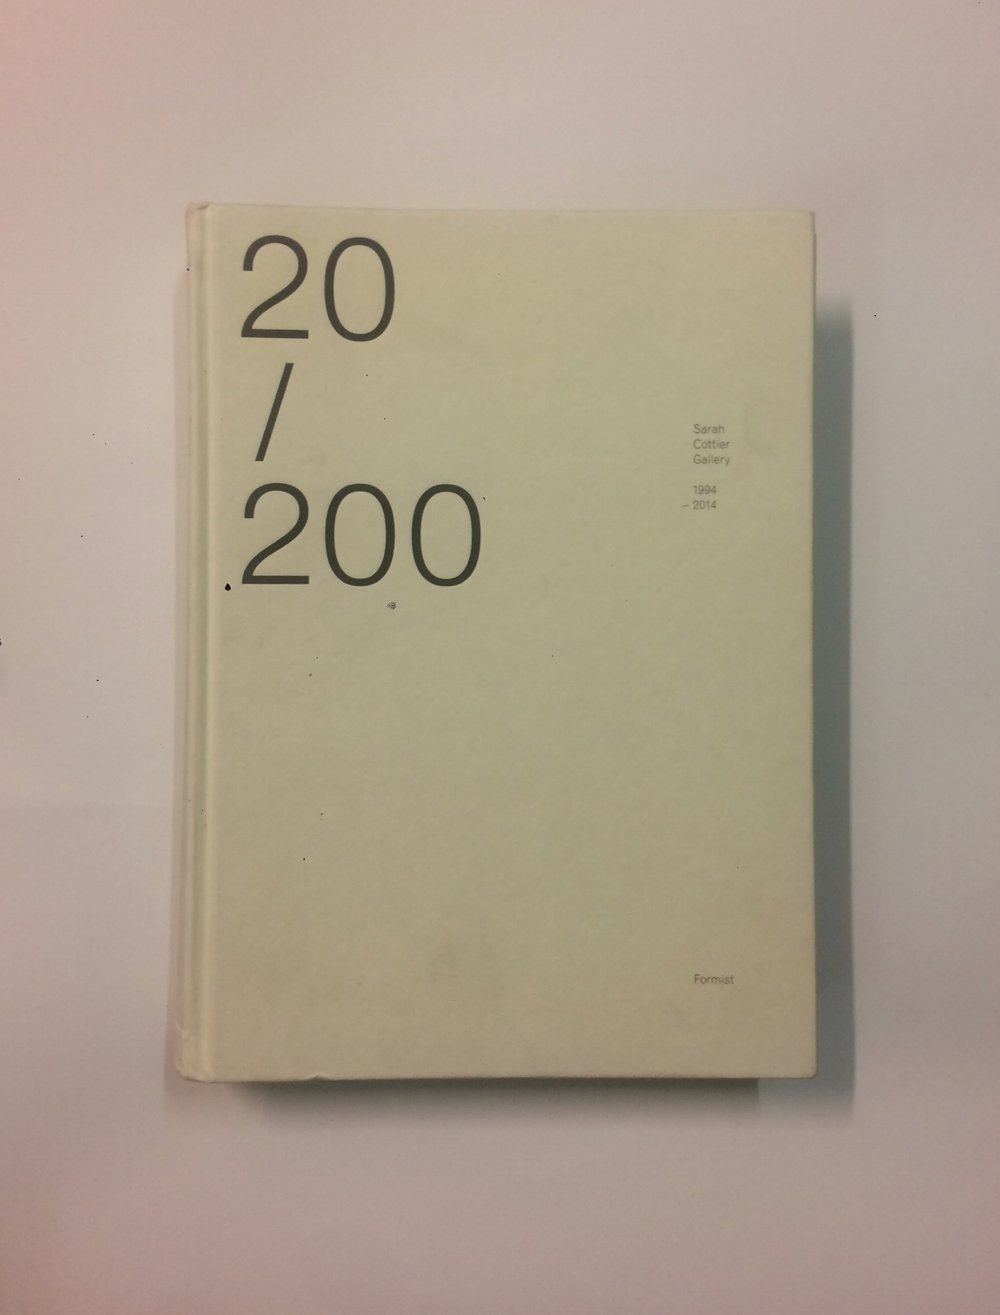 '20/200: Sarah Cottier Gallery 1994-2014'